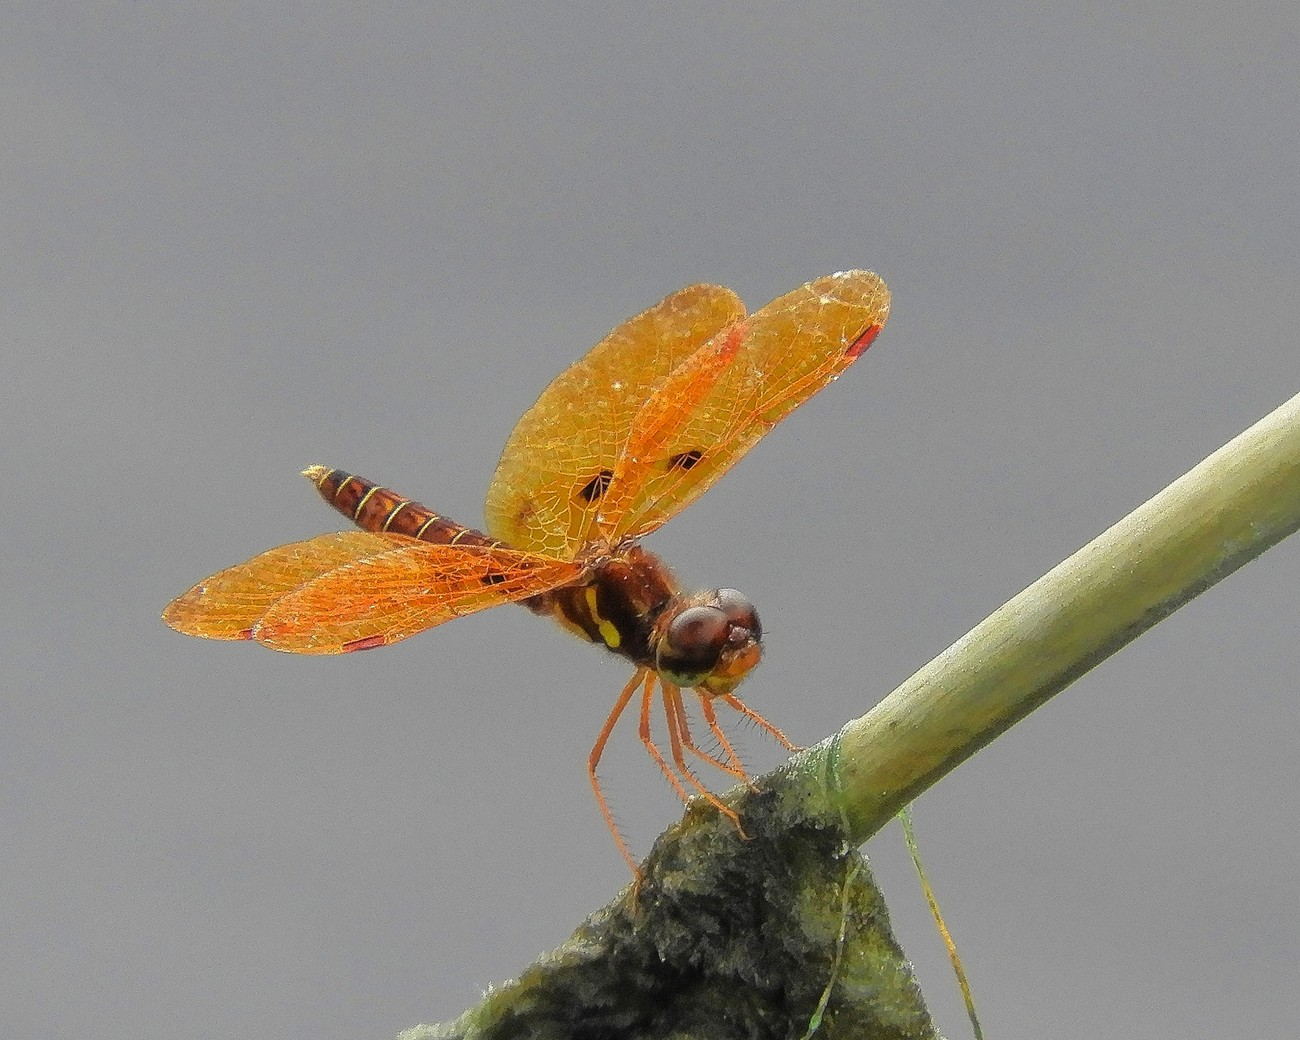 Eastern Amberwing photographed in the pond in my backyard.